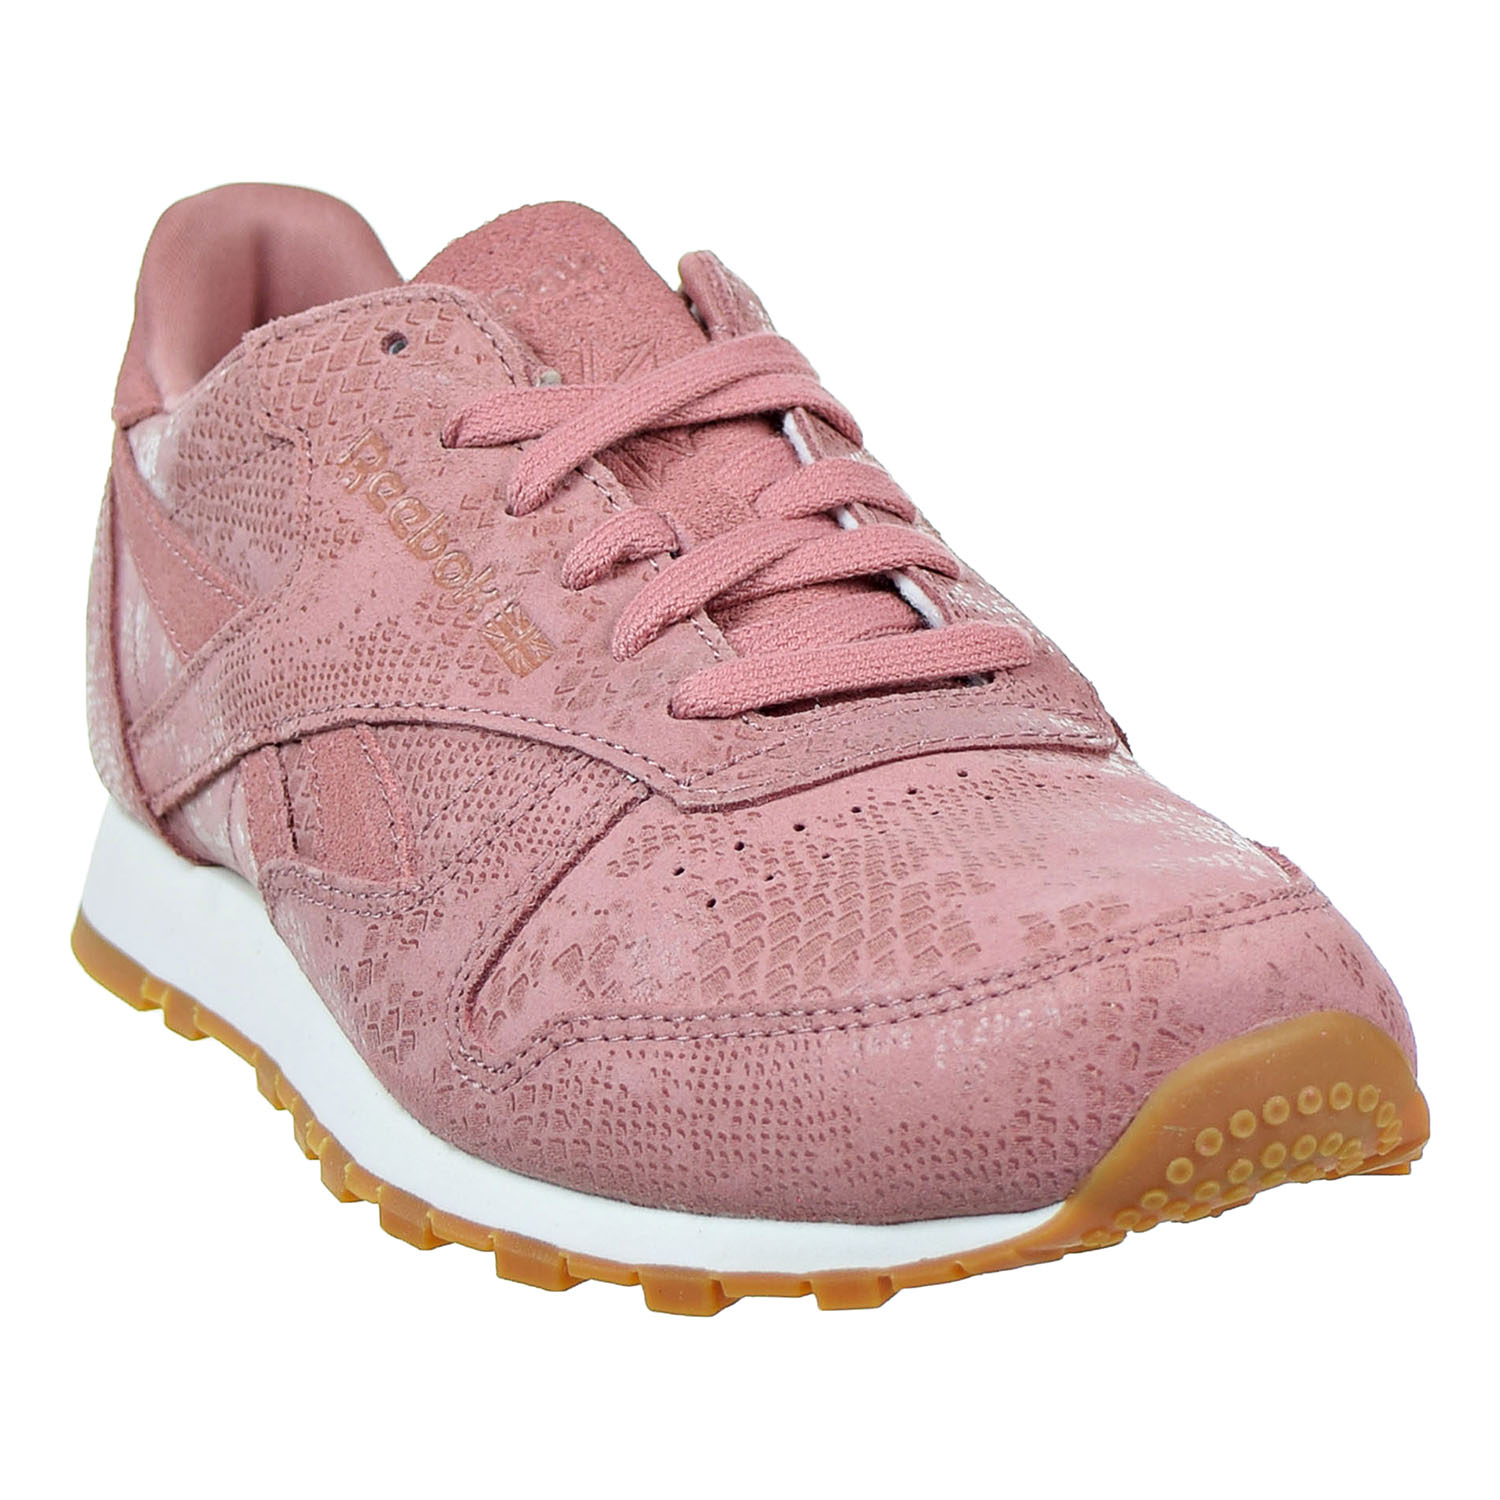 9ecf474bac359 Reebok - Reebok Classic Leather Clean Exotics Women s Shoes Sandy  Rose Chalk Gum bs8226 - Walmart.com